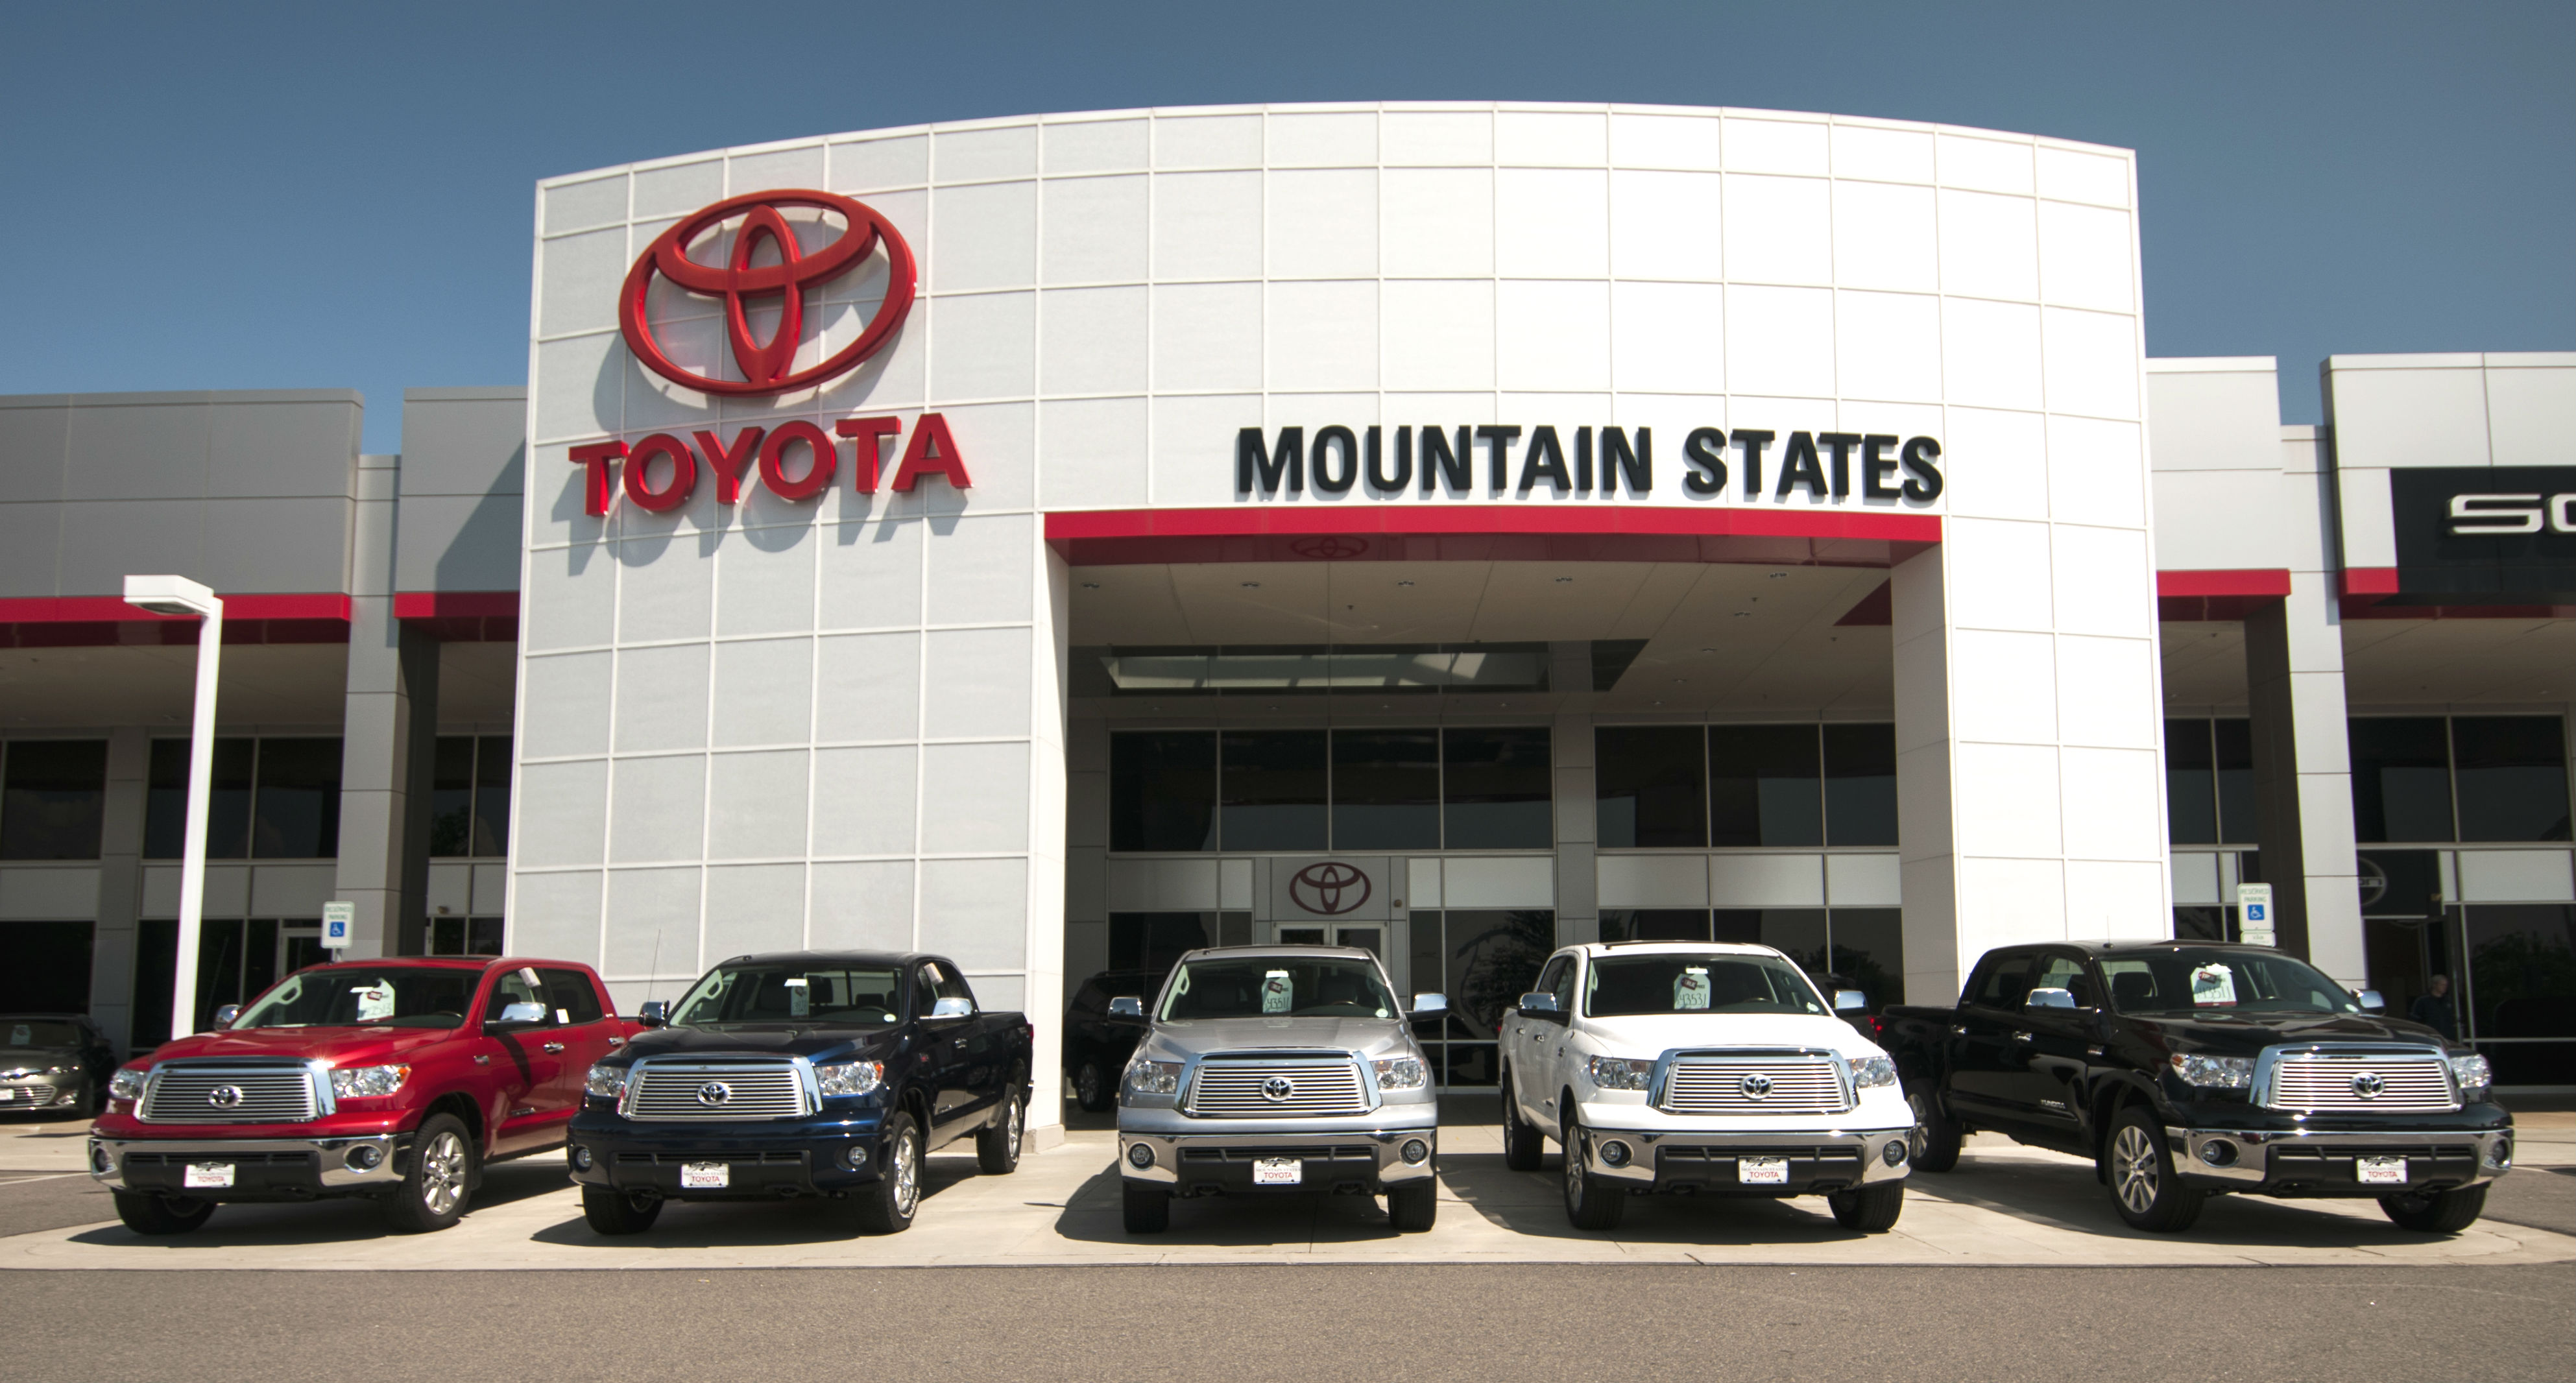 vehicles recall million industries recalling toyota over dealer millions business defects